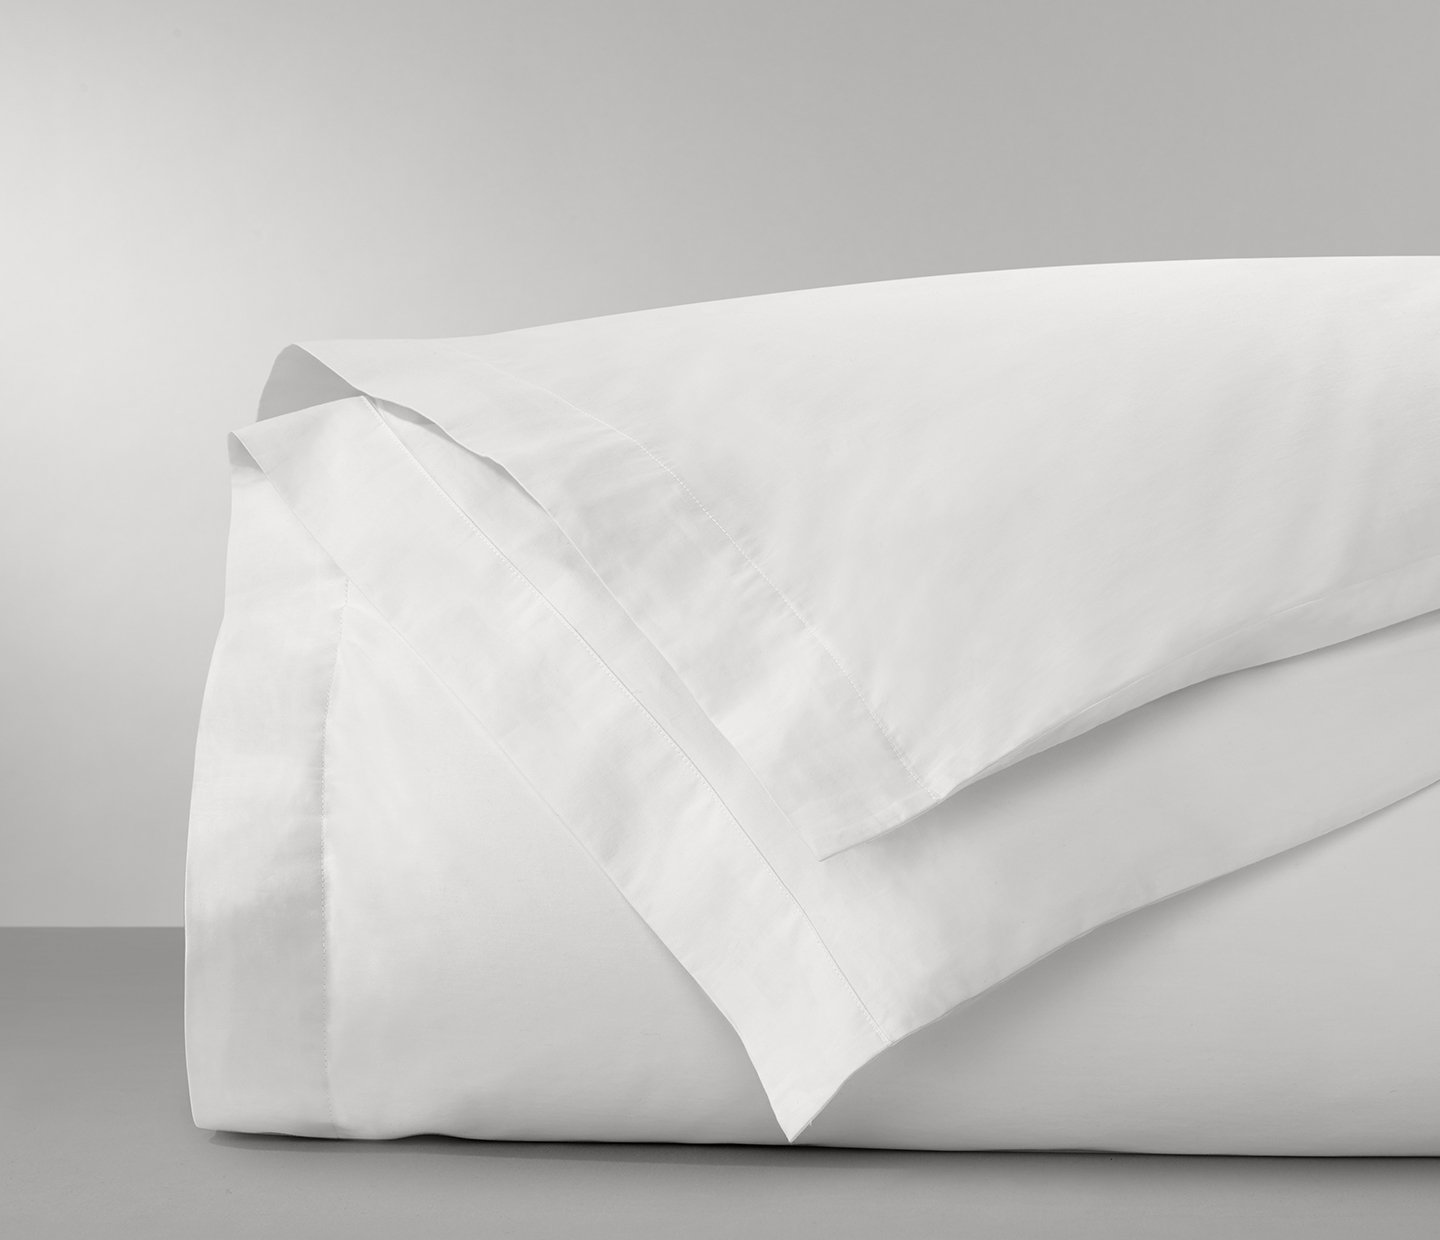 If you're on the hunt for a special, crisp white bedding collection or duvet cover made from 100% organic cotton look no more. We find a simple, classic white duvet cover is a great basic essential. Coordinate it with throw pillows and a cozy throw for a layered bed.  learn how to make a beautiful bed every single time here.